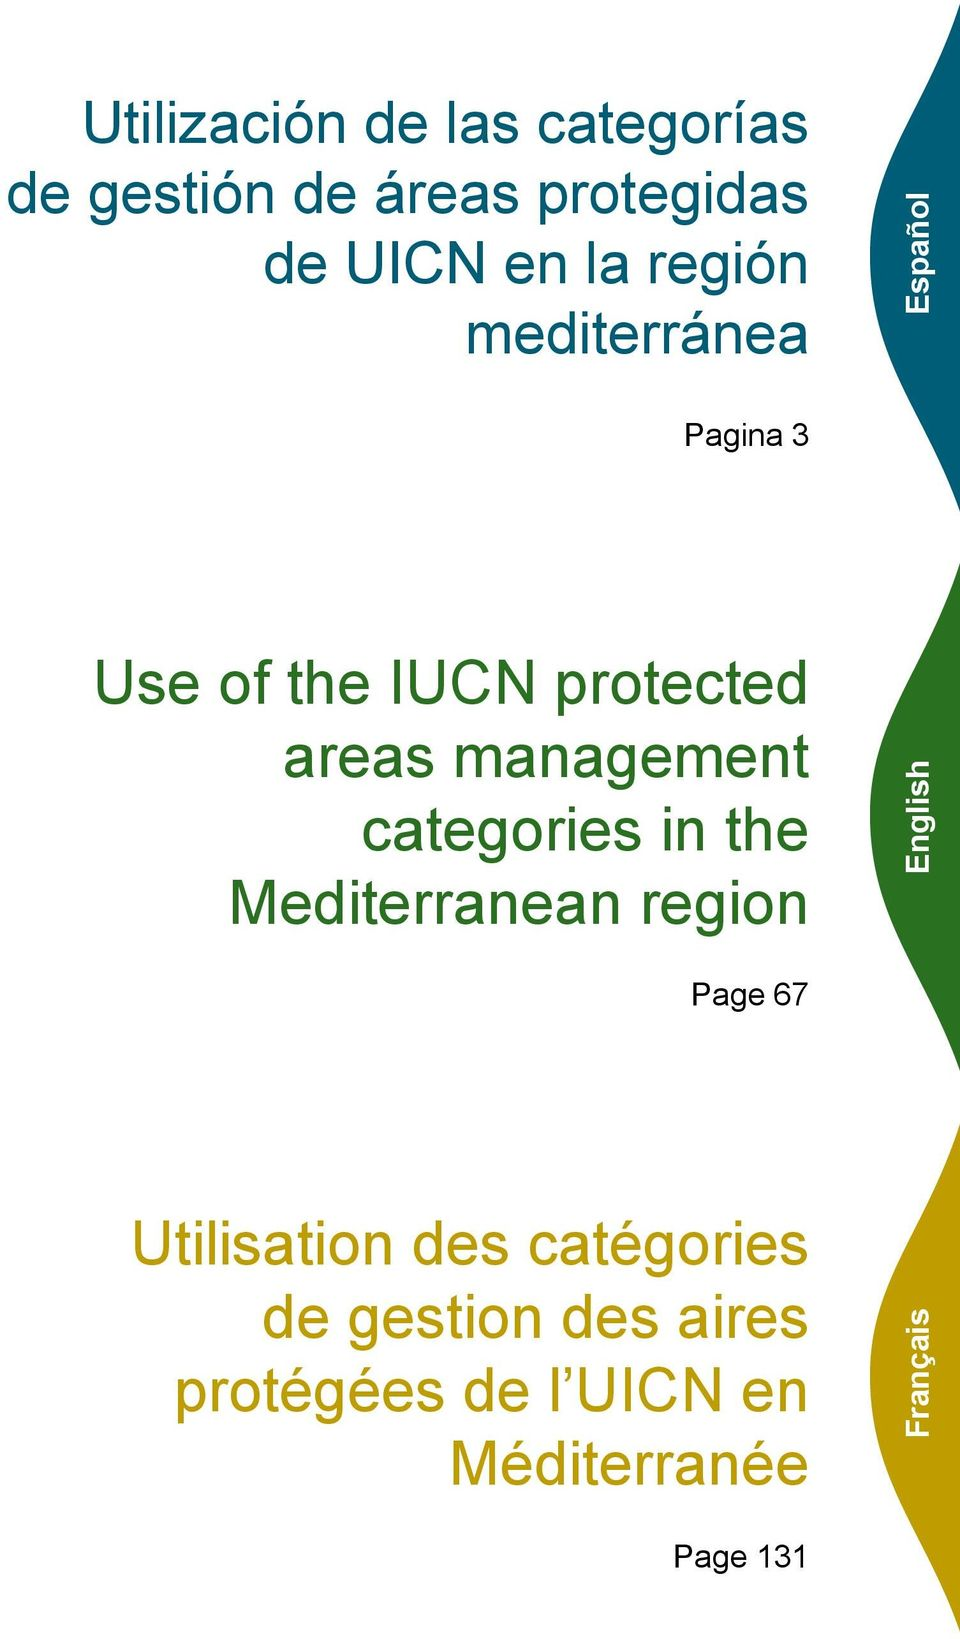 management categories in the Mediterranean region English Page 67 Utilisation